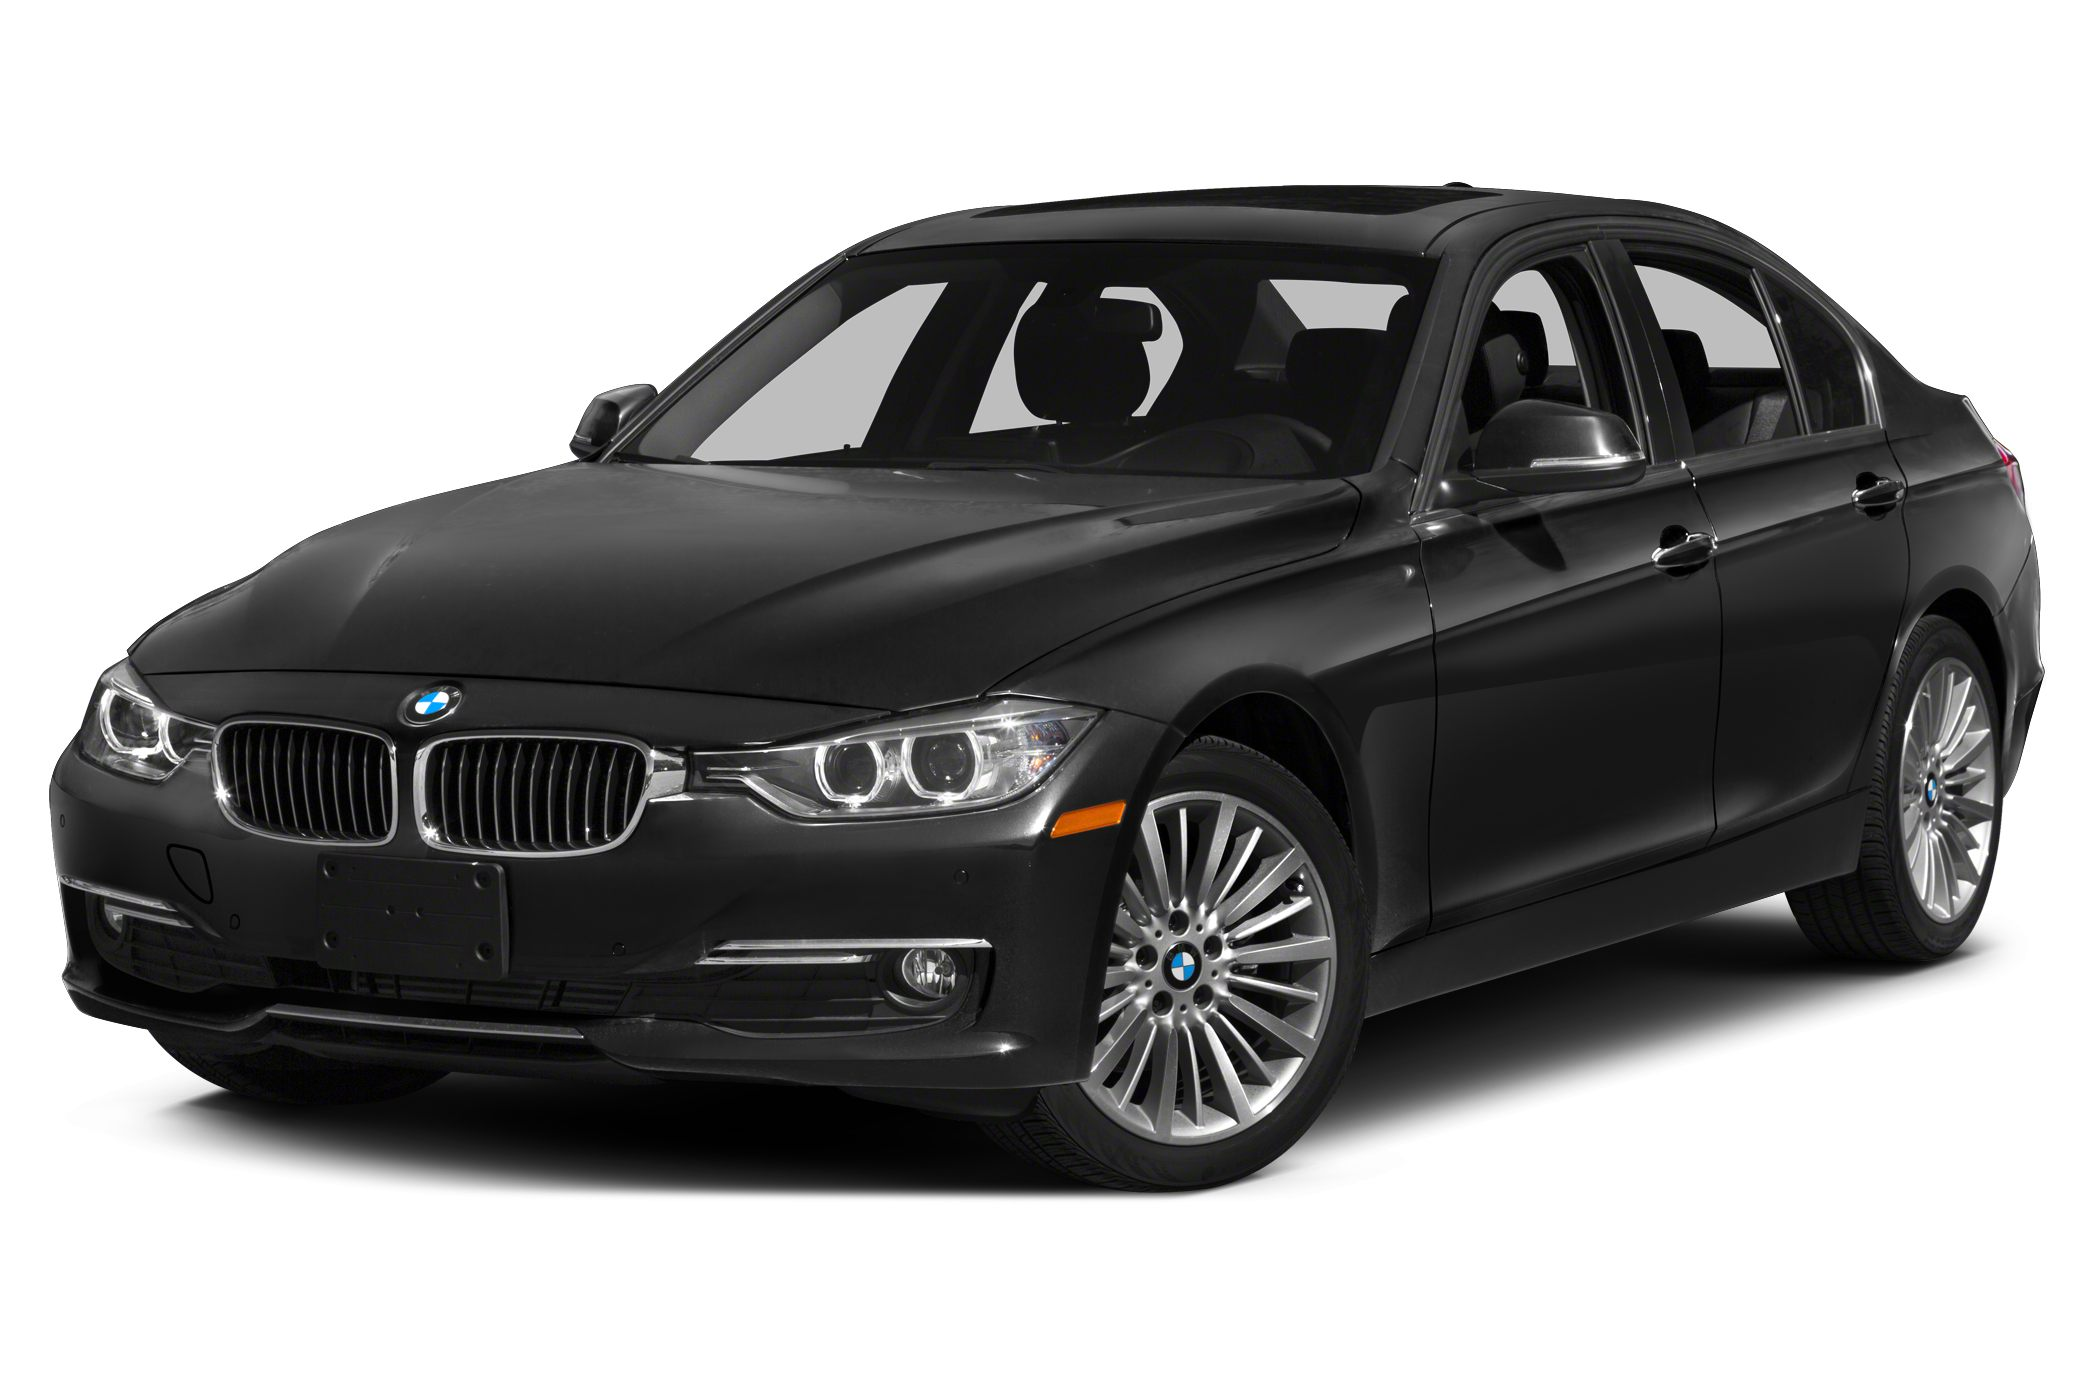 2014 BMW 328d Base Sedan for sale in Greenville for $33,795 with 37,044 miles